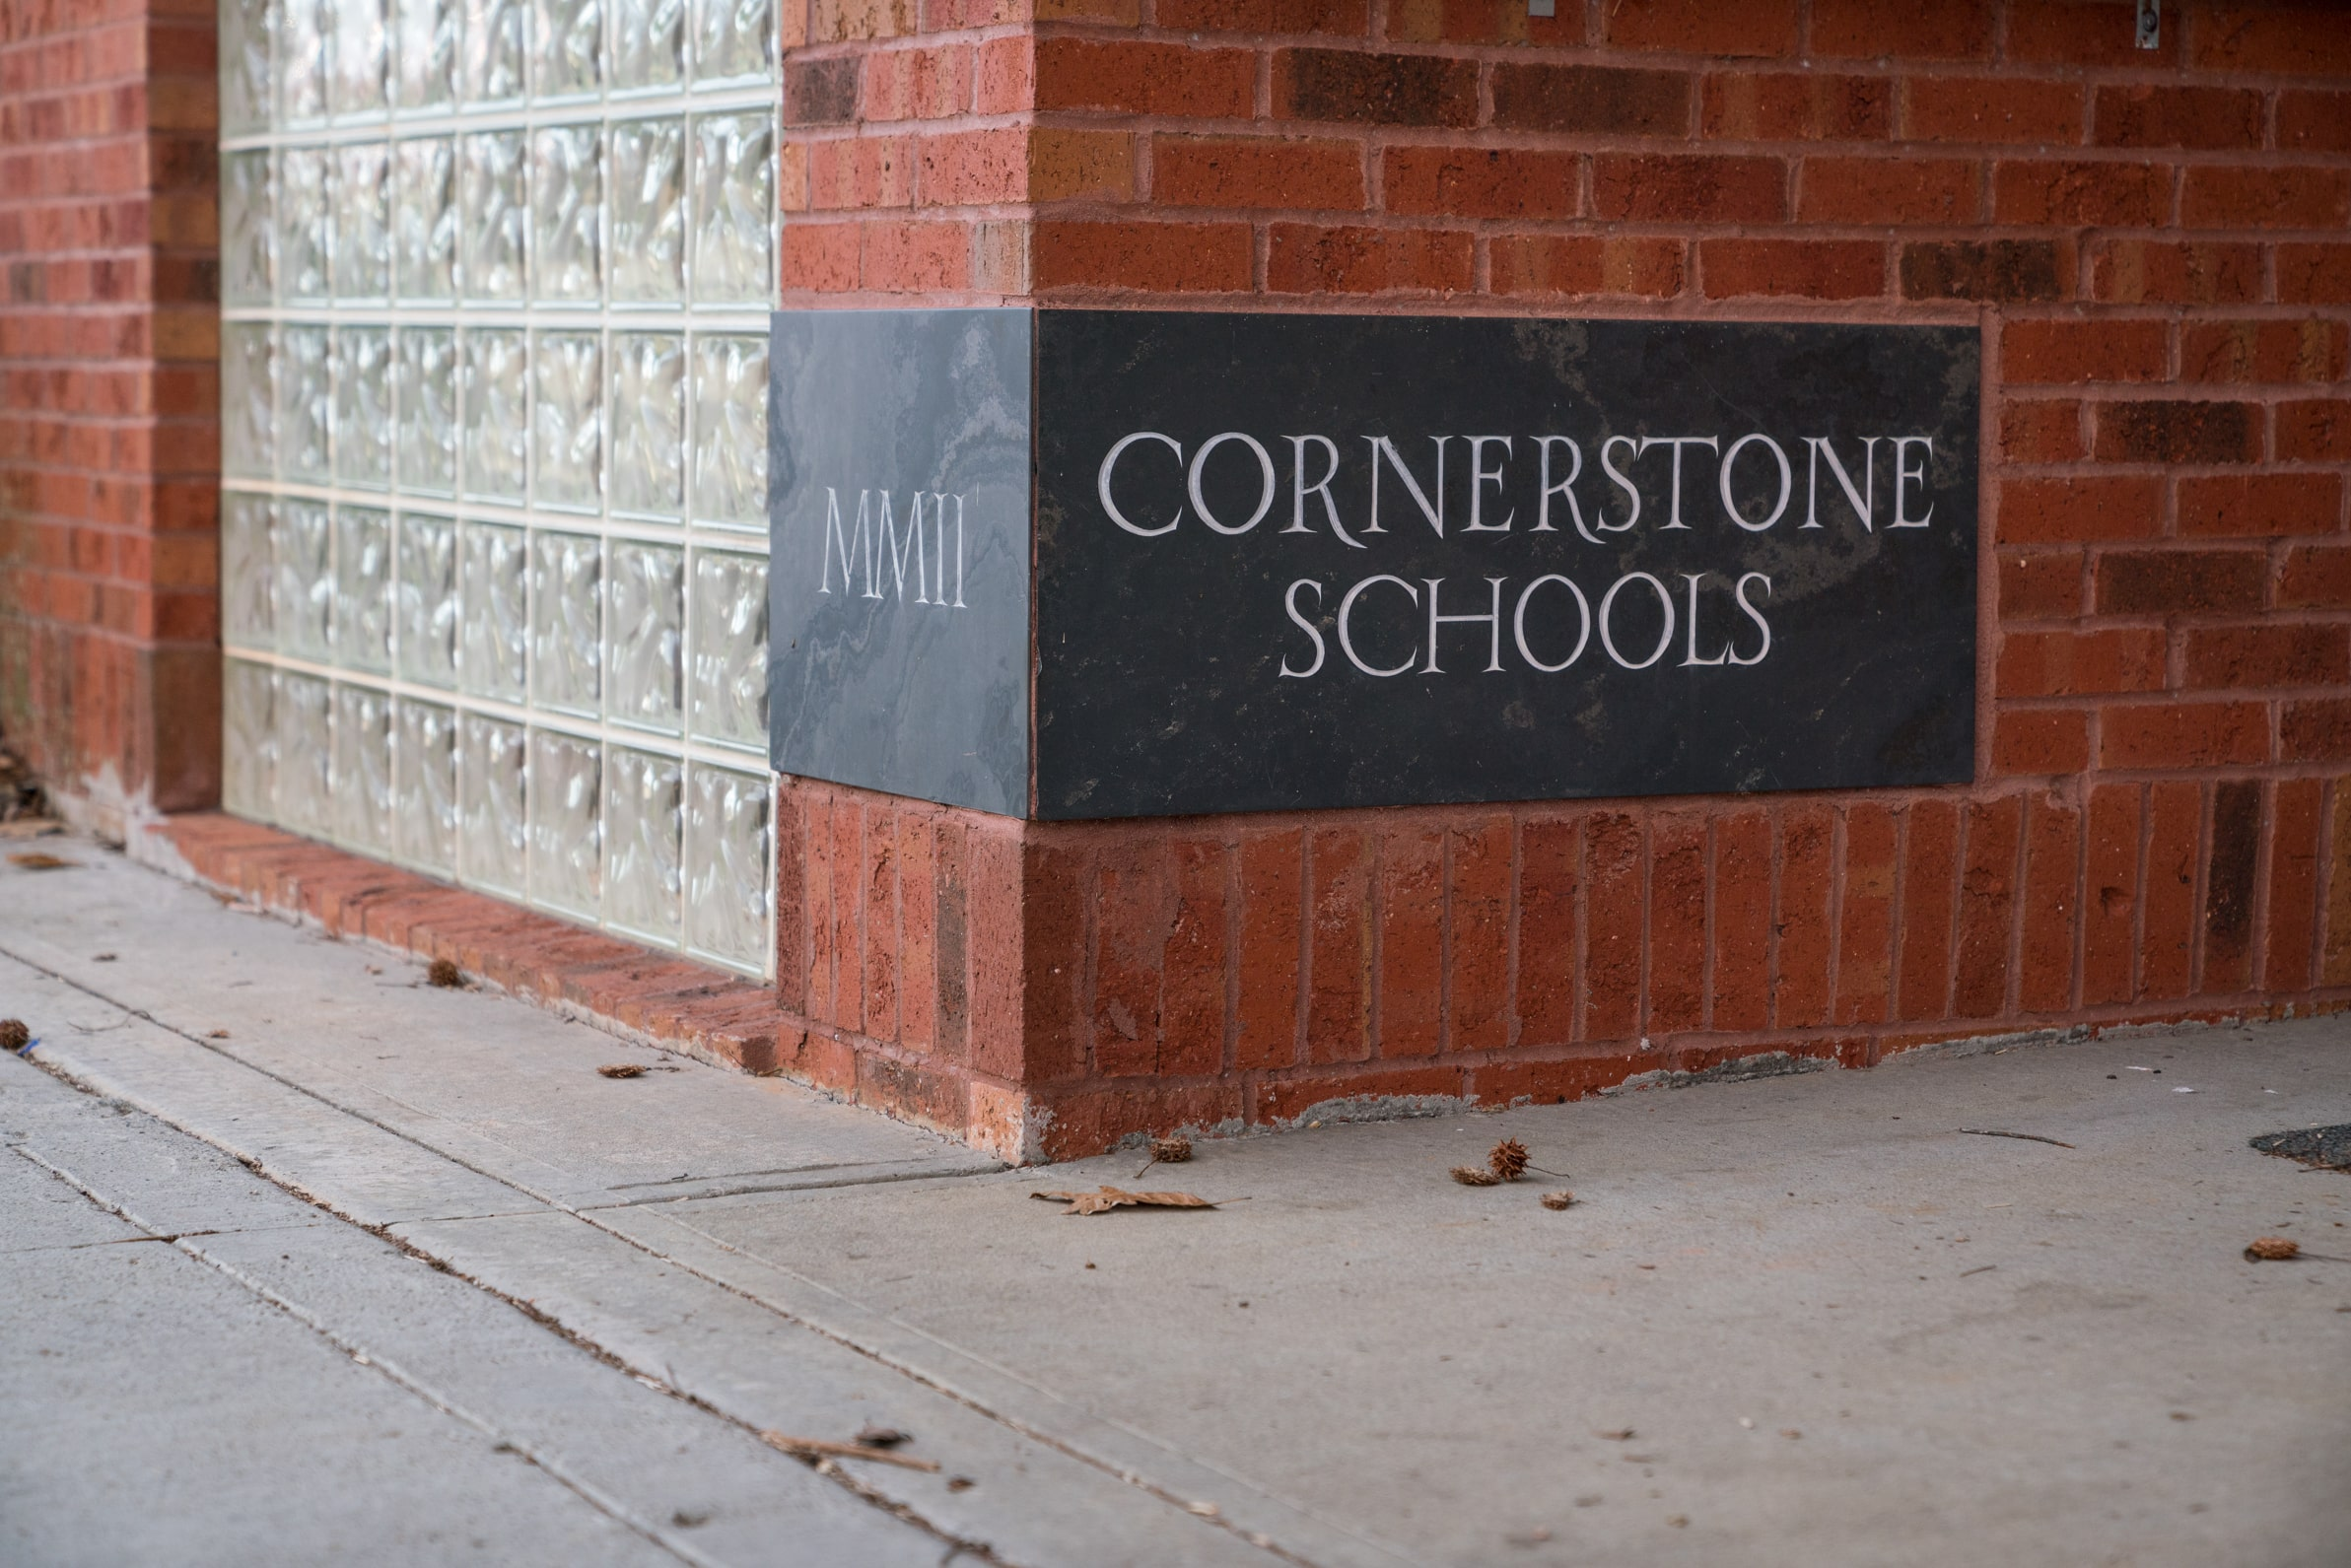 Cornerstone Schools was founded in 1999 and is located in Forsyth County.  Our Campus  is on 30 wooded acres close to Cumming, GA., Lake Lanier, and just minutes from GA 400.